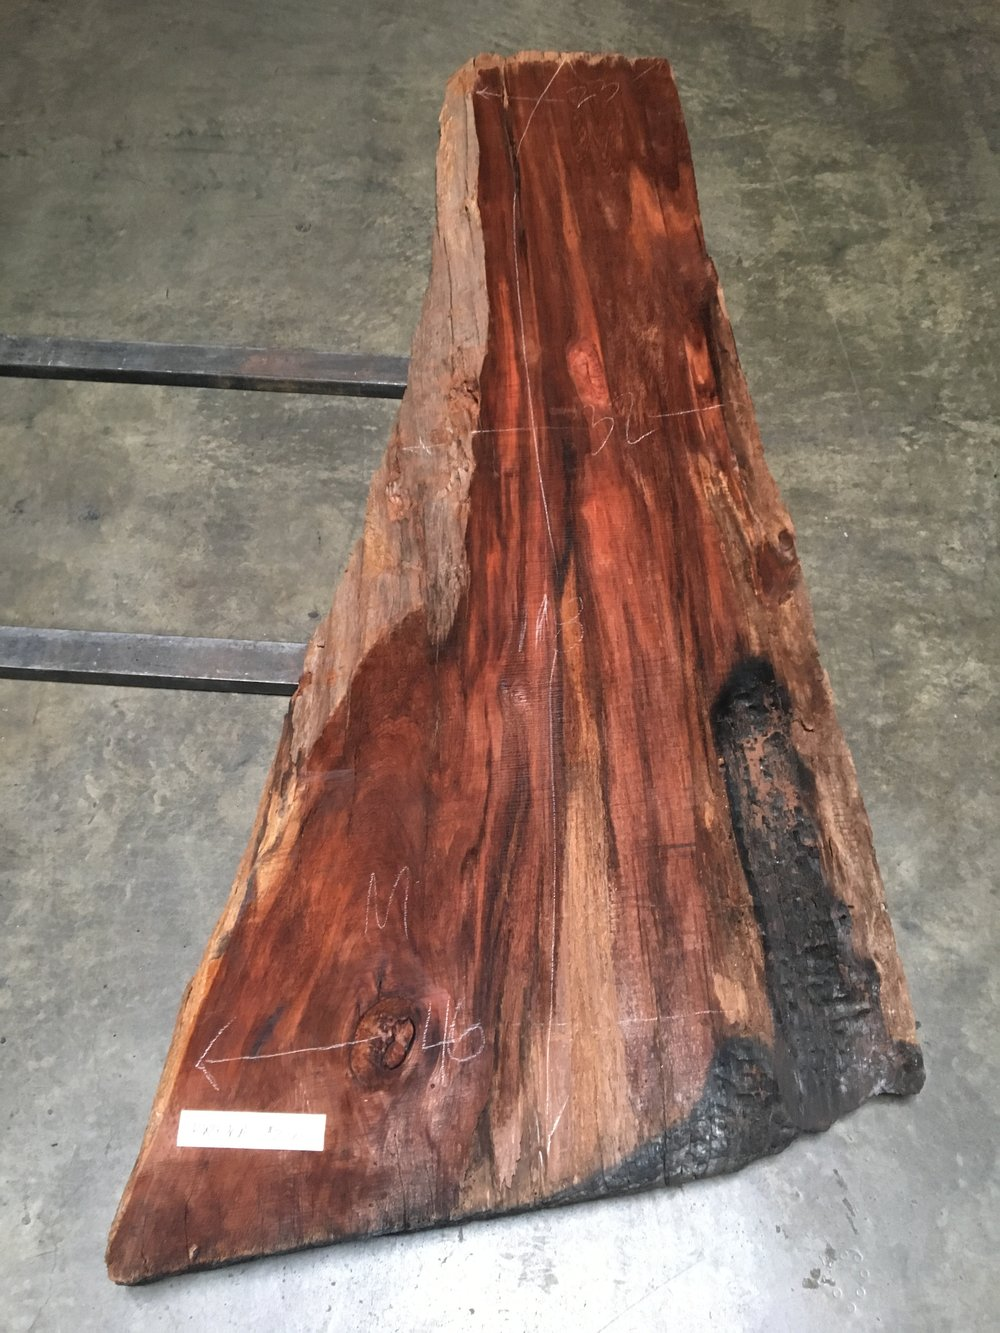 old growth redwood slab from from a 1200 year old log! It has been air drying since the 40's when it was originally dropped.